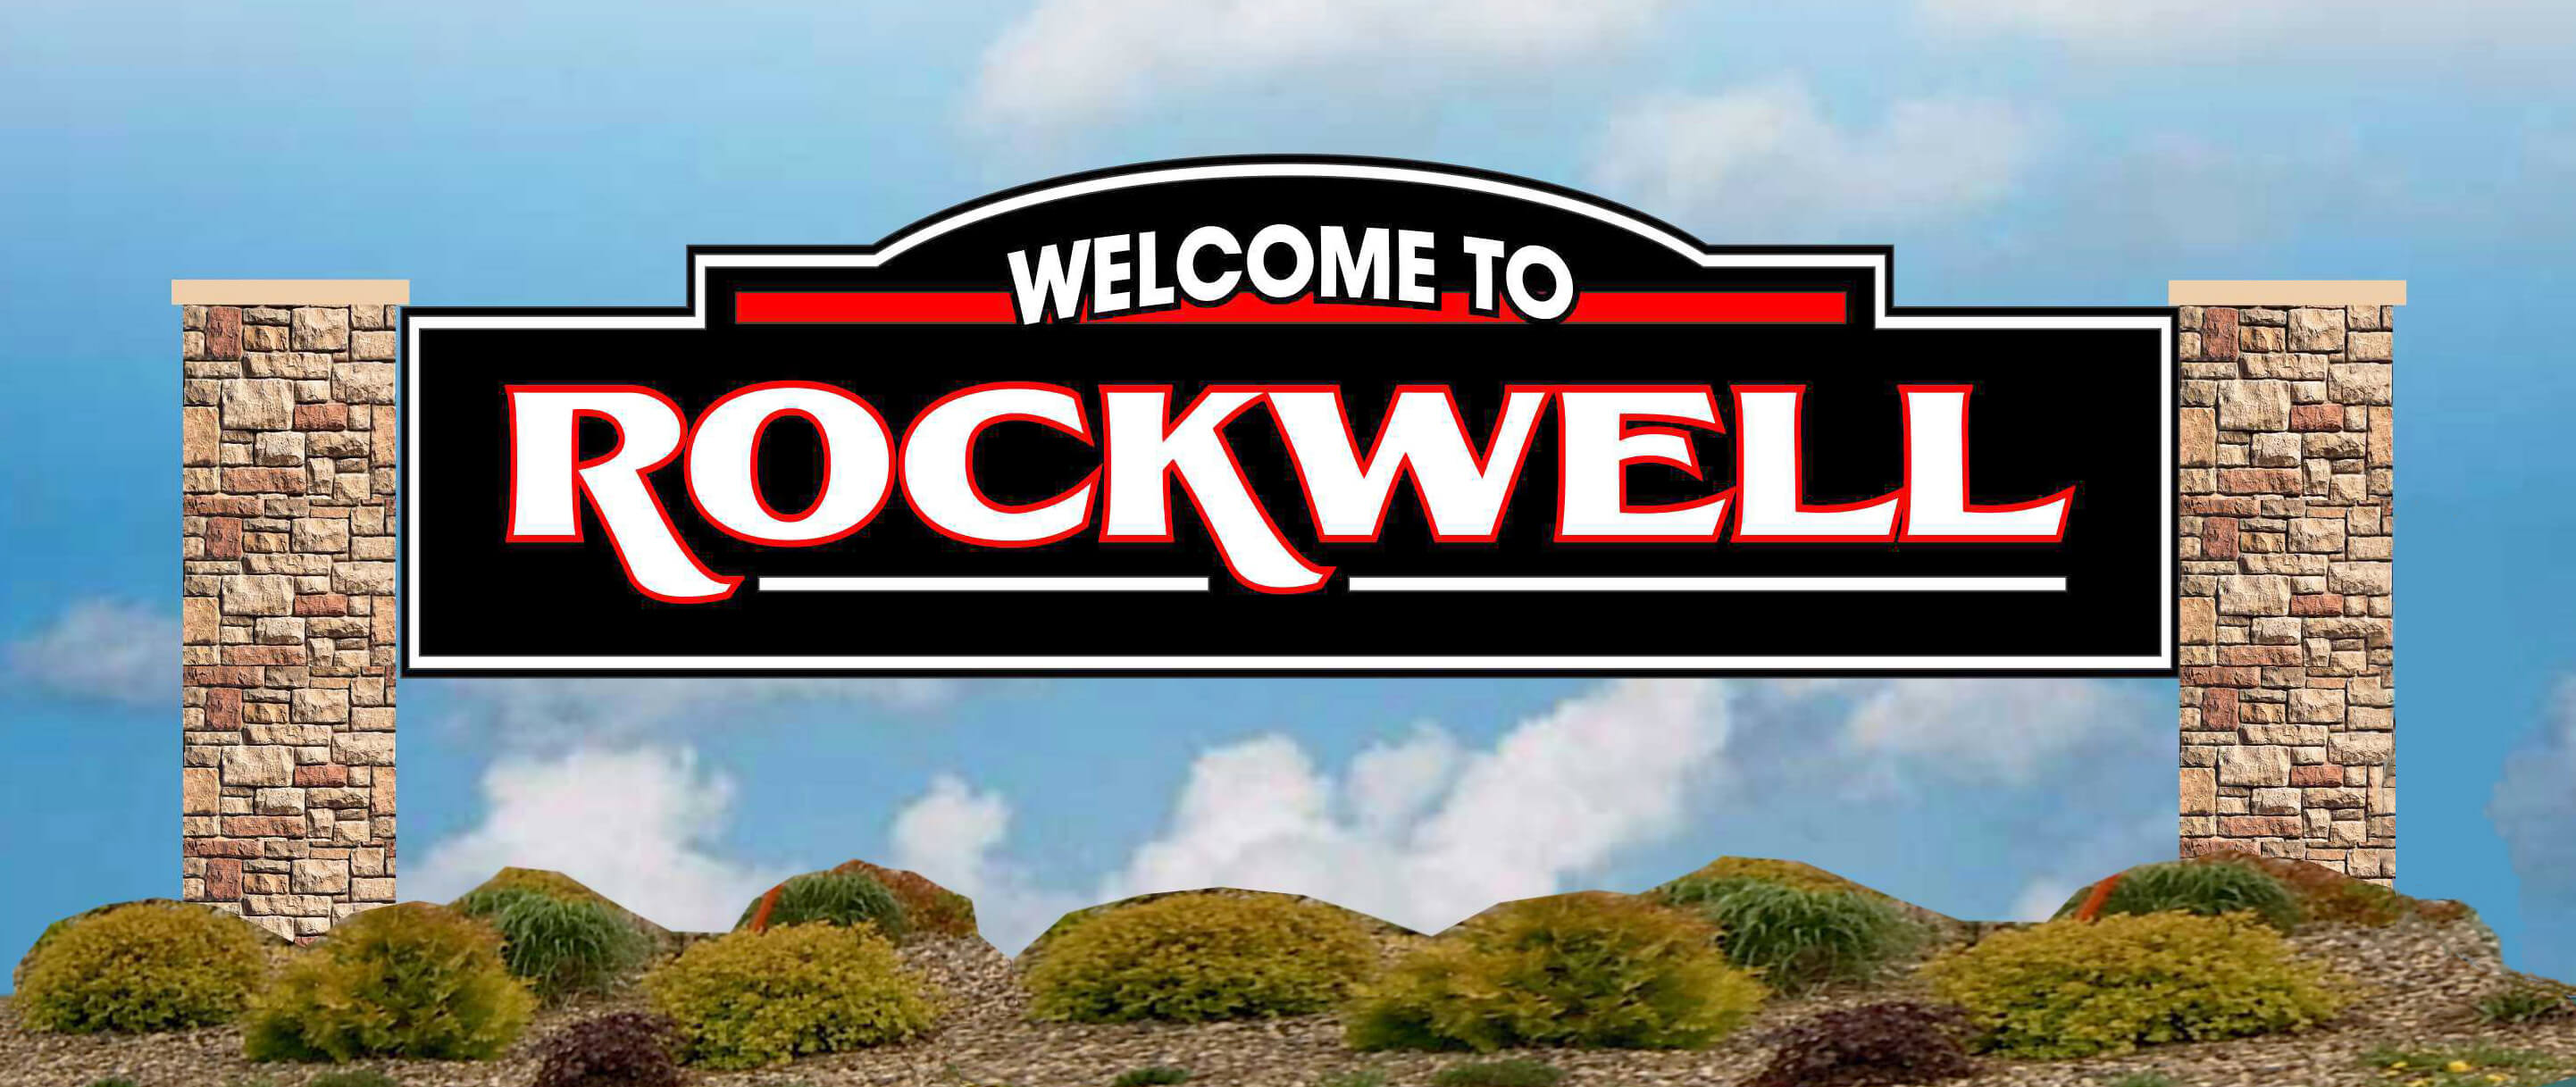 City of Rockwell, Iowa